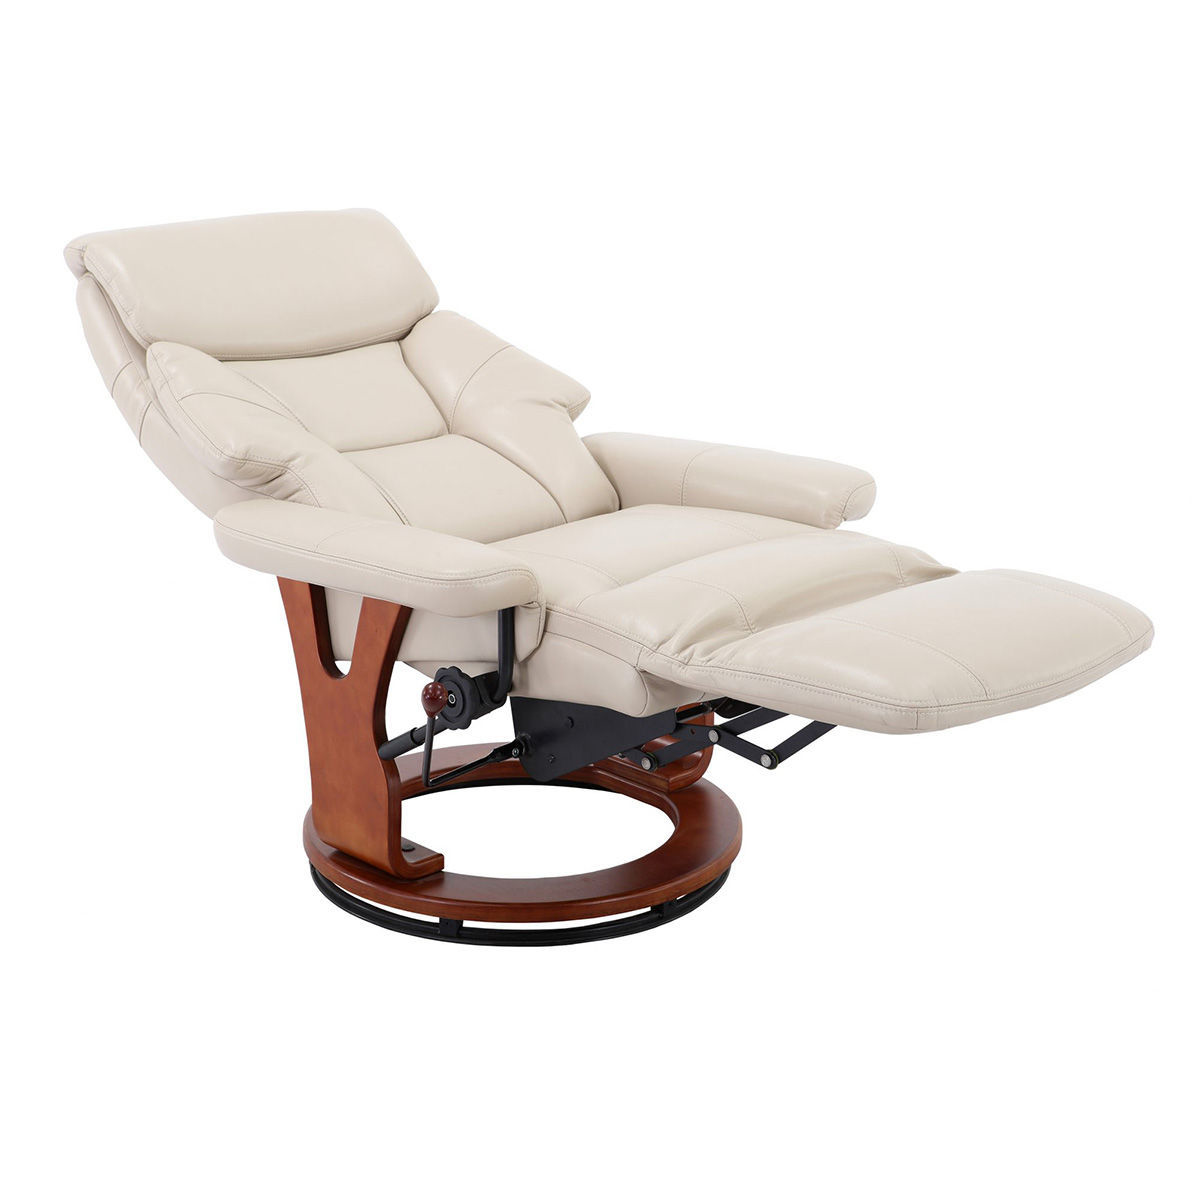 Picture of Bismark Recliner in Cobblestone Air Leather